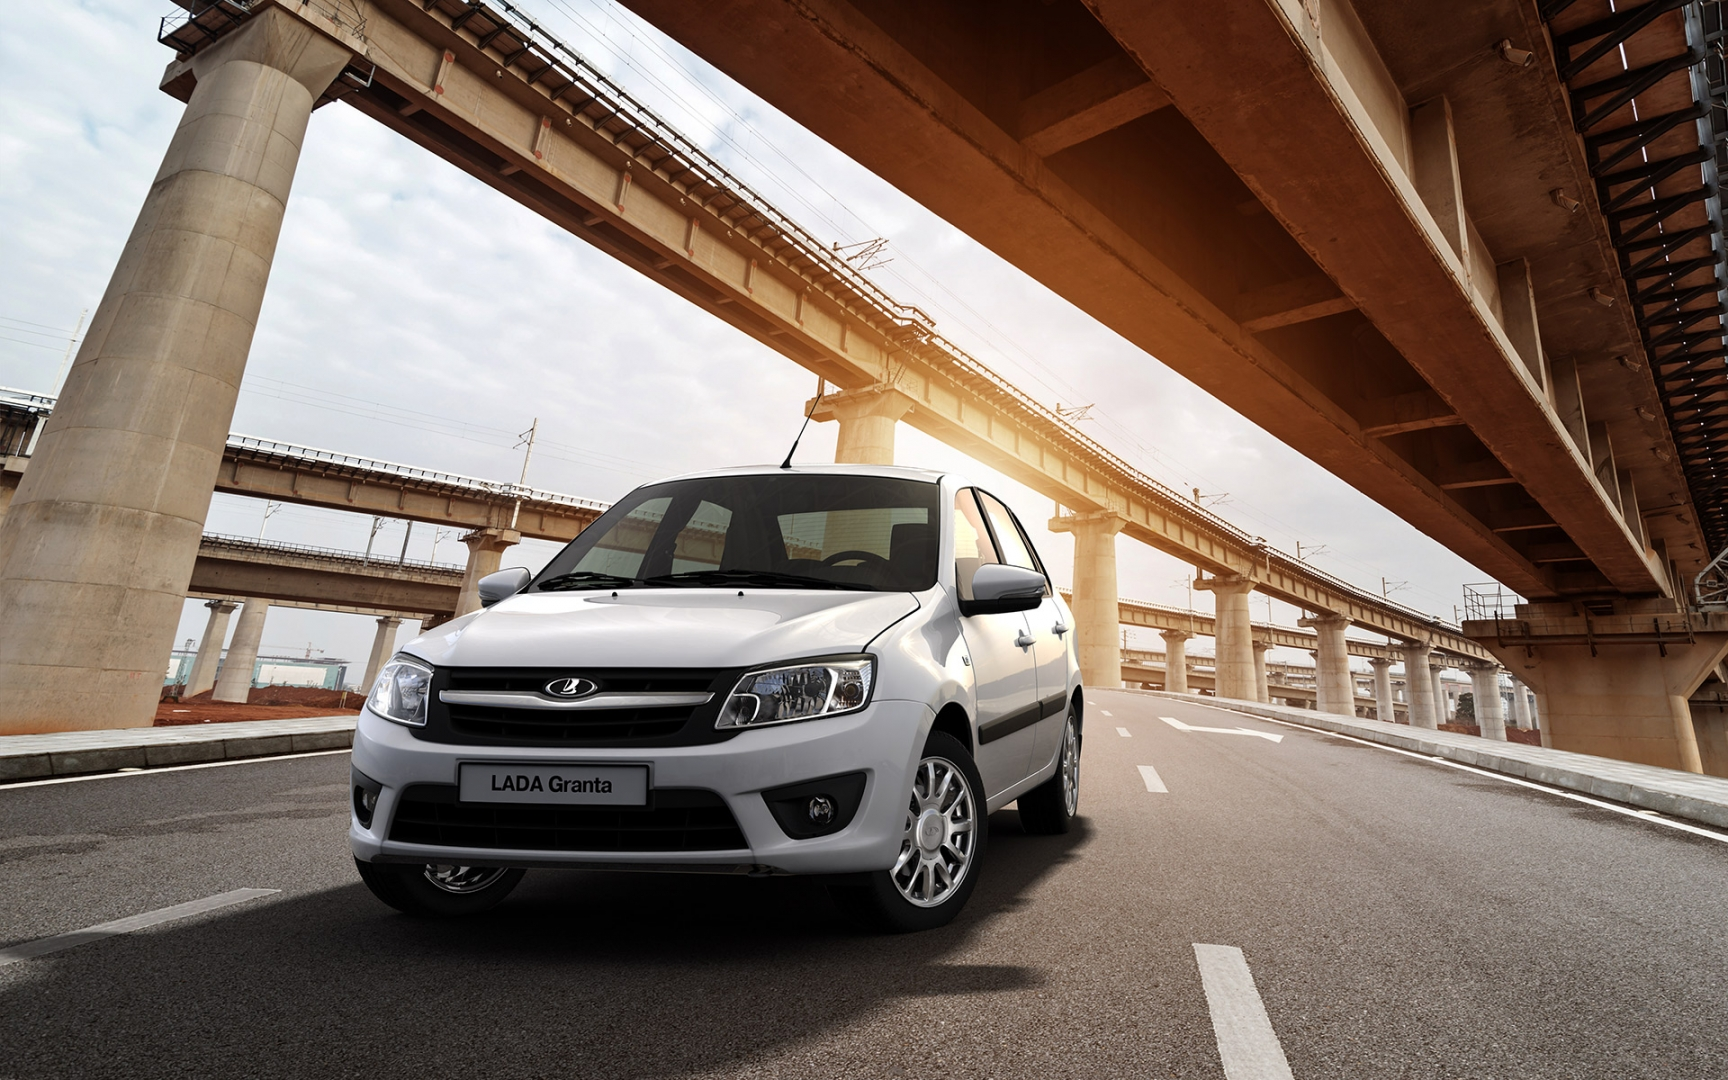 Lada Grant sedan: specifications and owners reviews